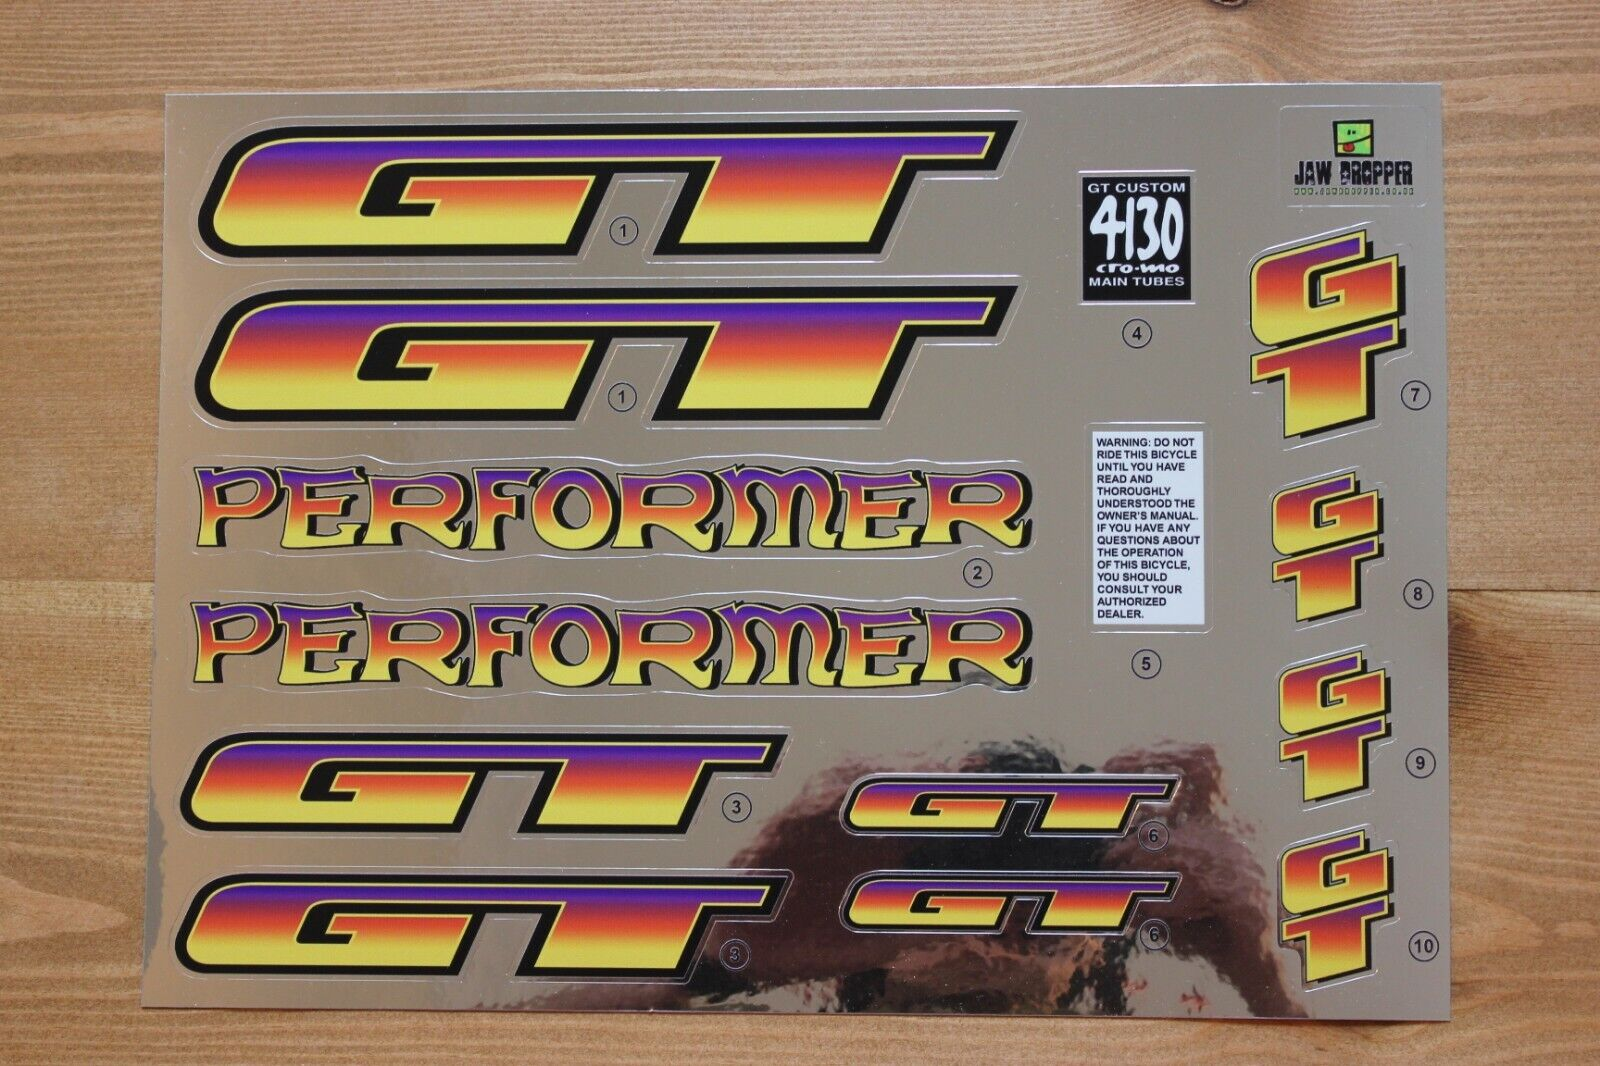 Reproduction 1996 GT Performer Bmx Decal Set-Cromo del forro